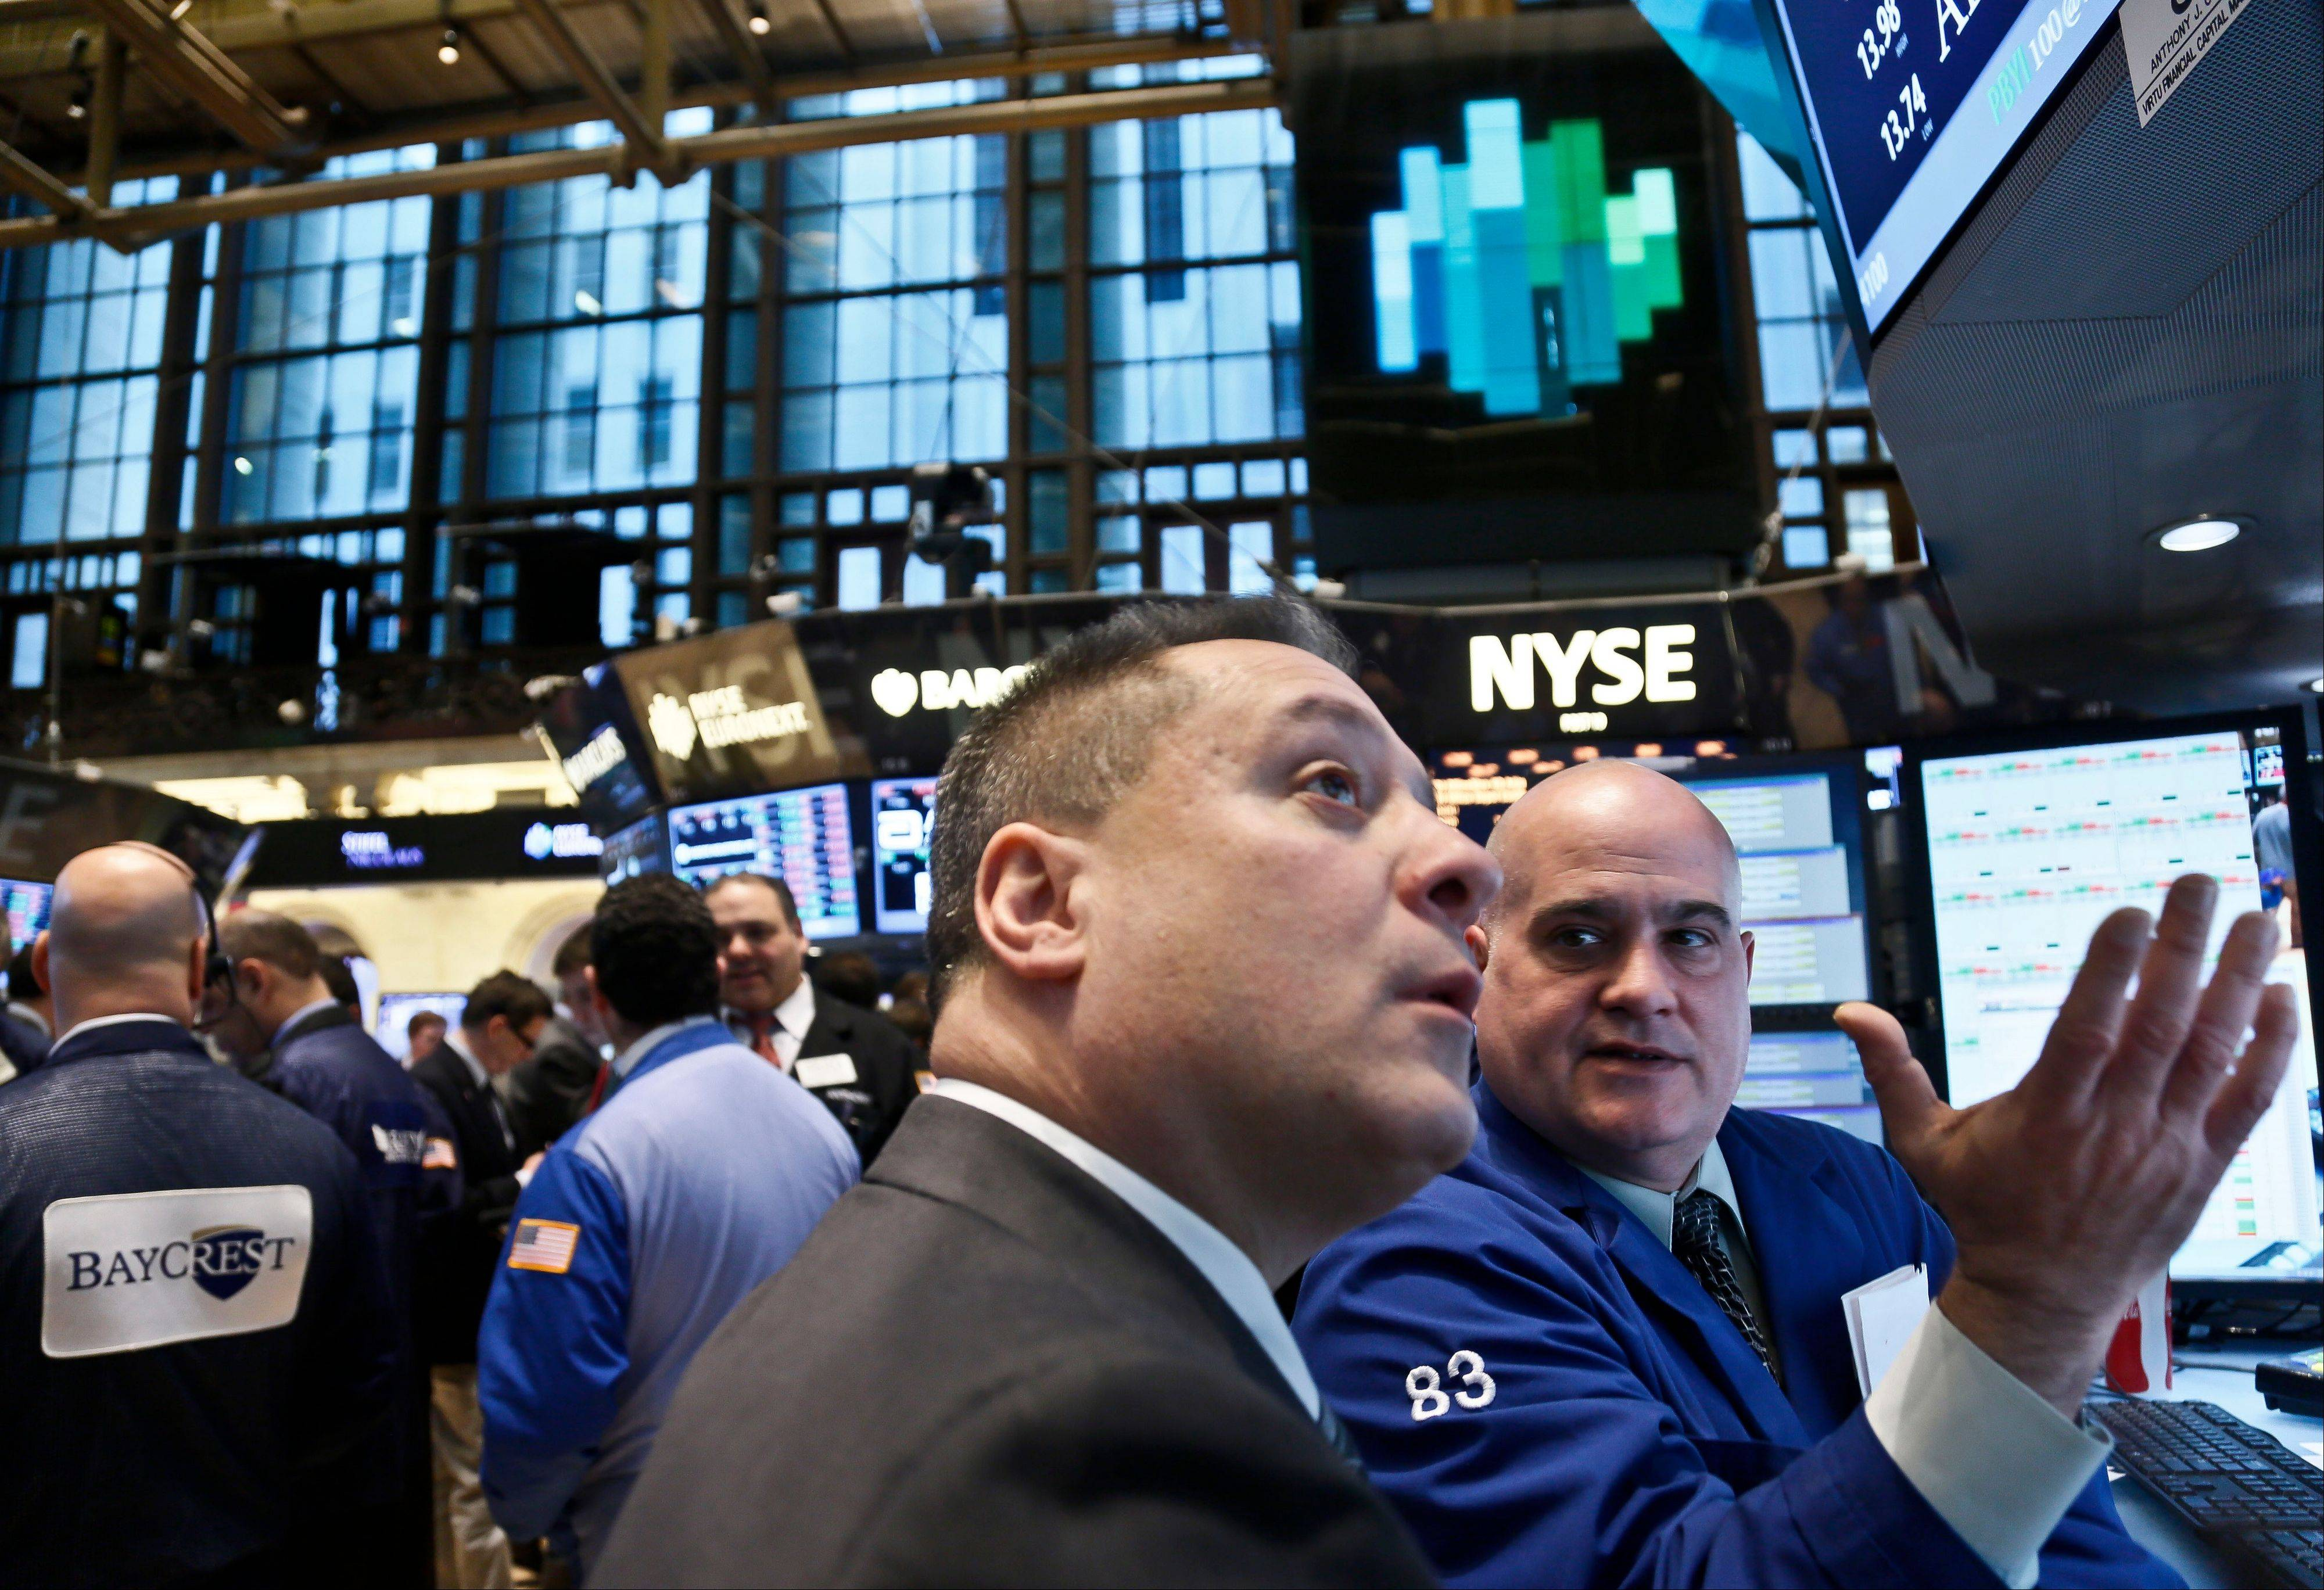 ASSOCIATED PRESS U.S. stocks fell from five-year highs, giving the Standard & Poor's 500 Index its biggest decline since November, as minutes from the Federal Reserve's last meeting showed a debate over further stimulus action.